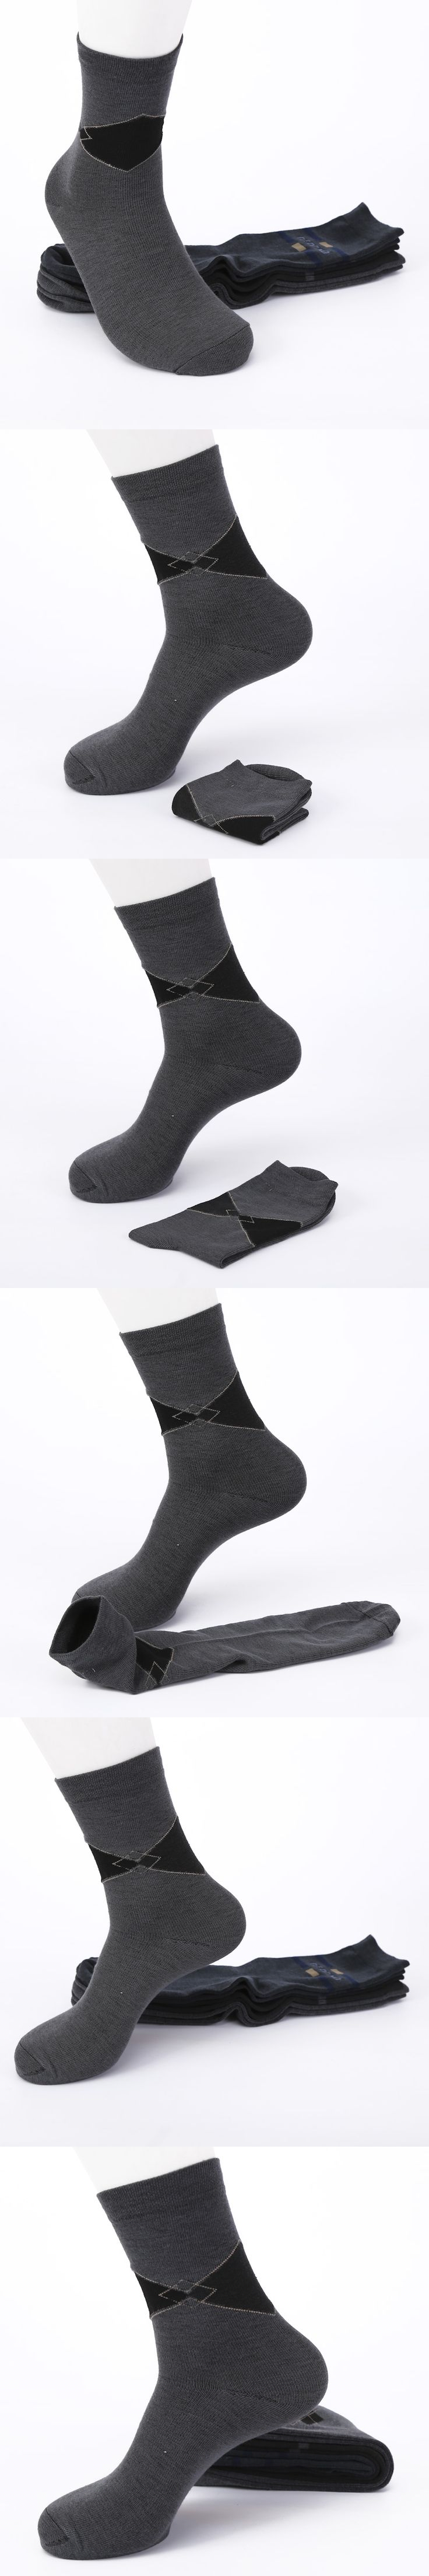 Mens Business Socks High Quality Polyester Casual Hot Sale Long Male Anti-Bacterial Socks For Men meias masculinas 2017 New #012